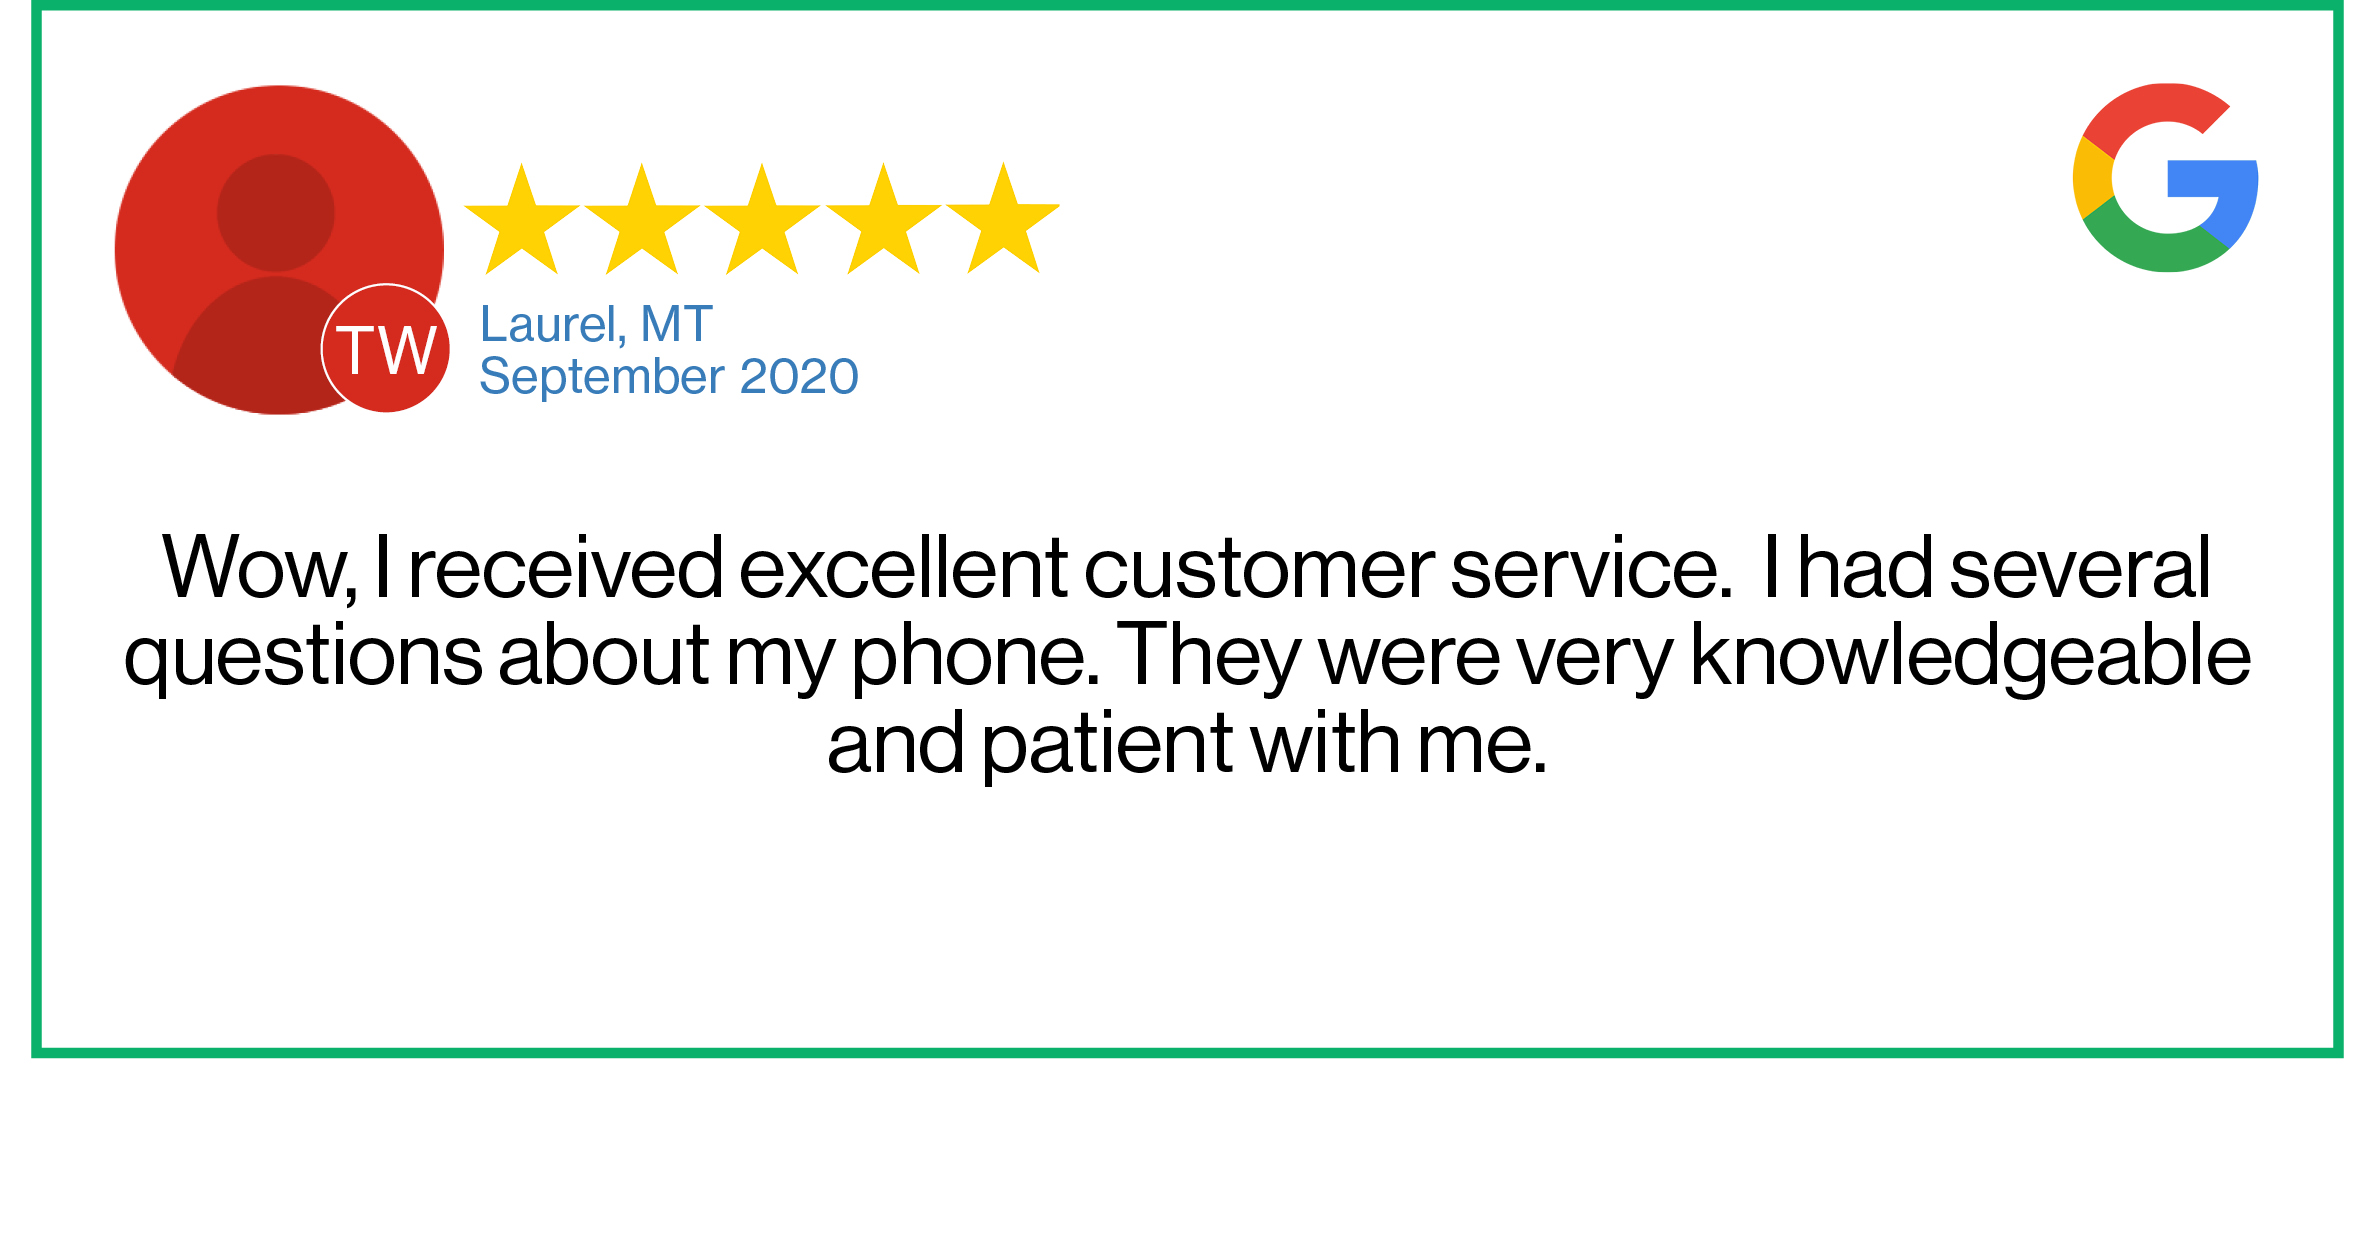 Check out this recent customer review about the Verizon Cellular Plus store in Laurel, Montana.